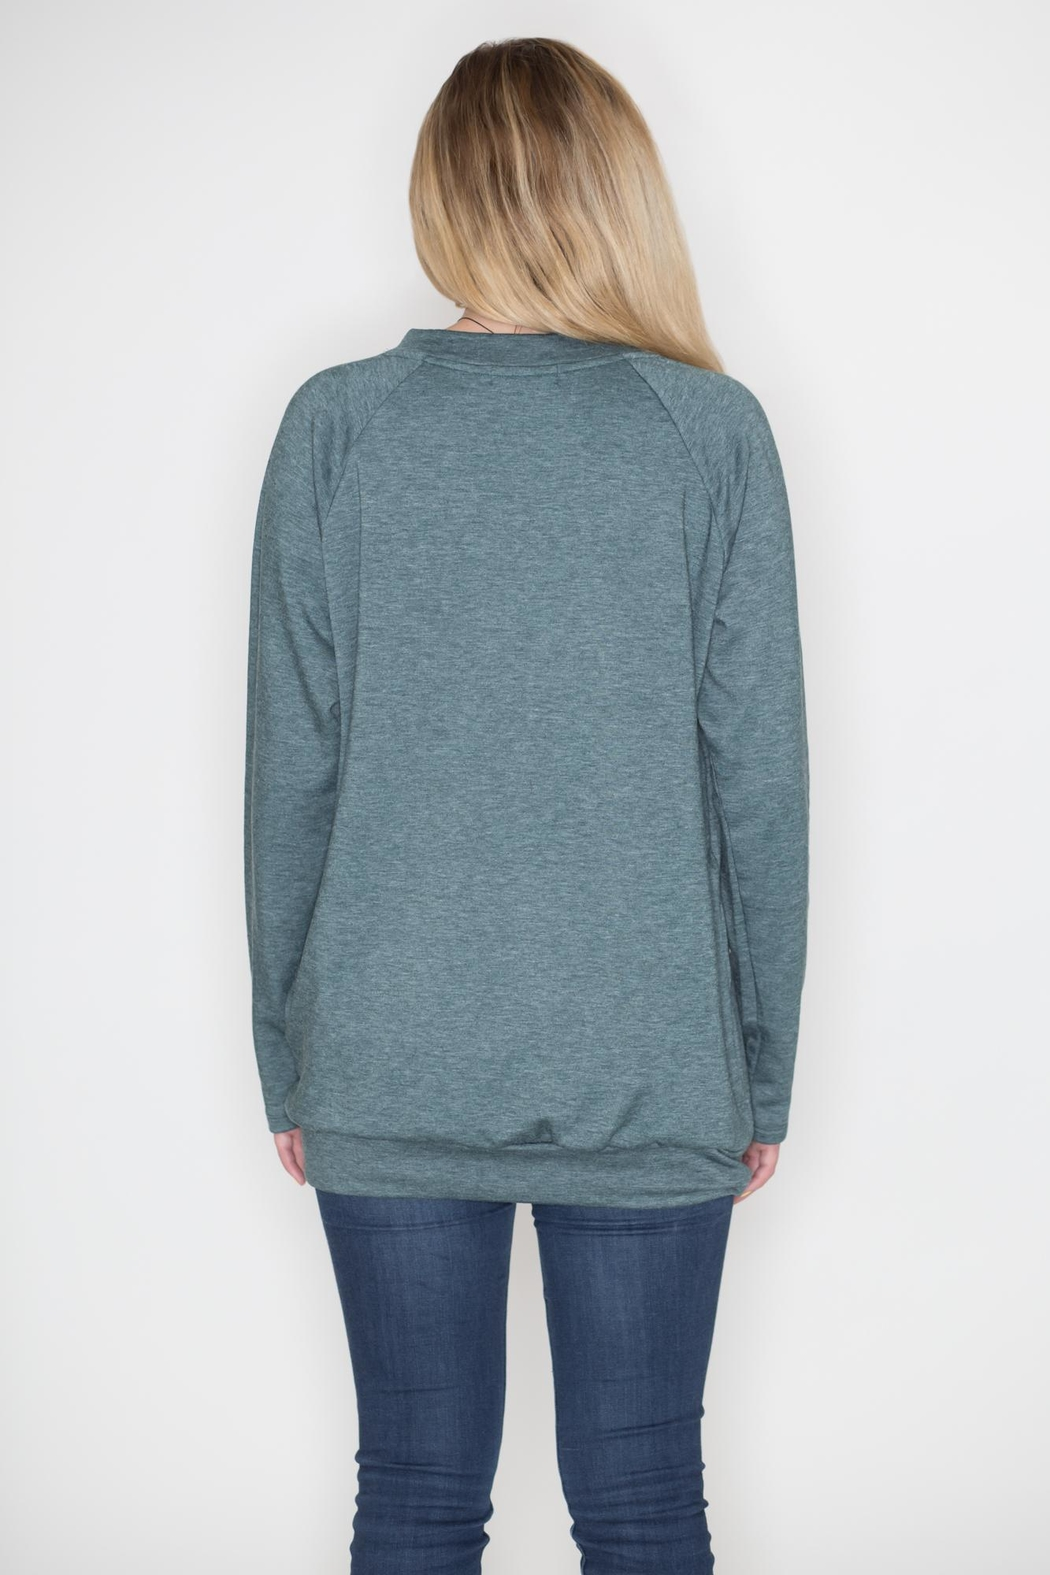 Cherish Lace Up Pullover Top - Side Cropped Image